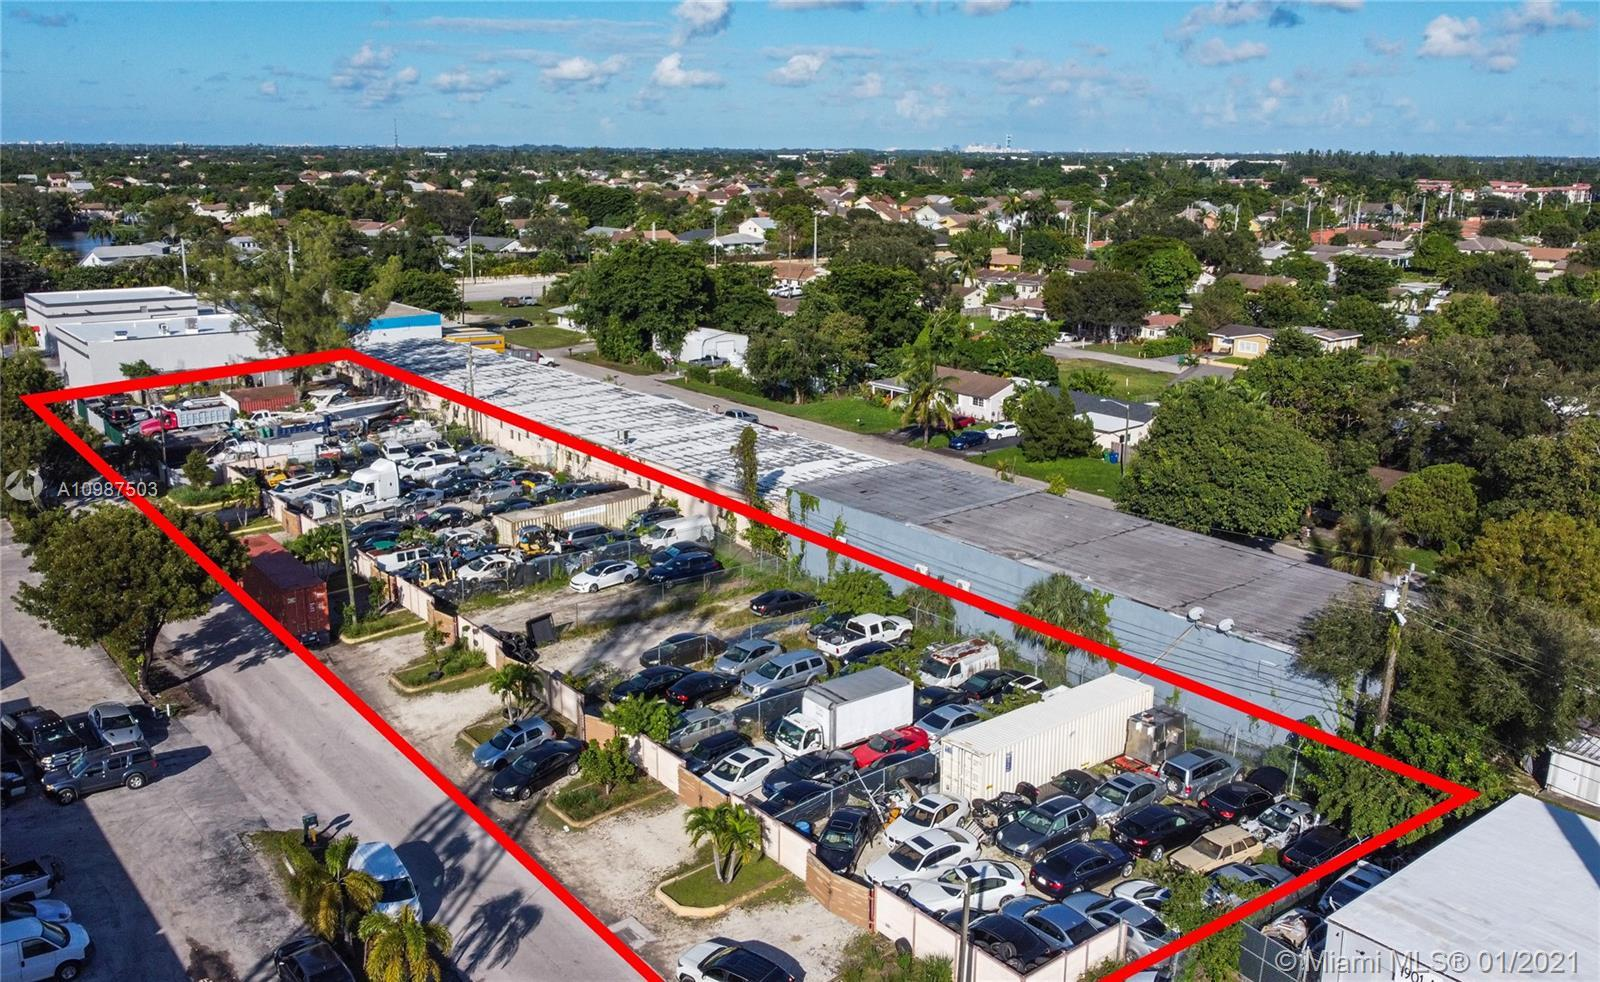 FOR SALE VACANT LAND. ZONED: B-3  Heavy Business District. Surrounded by warehouses. 2 lots side by